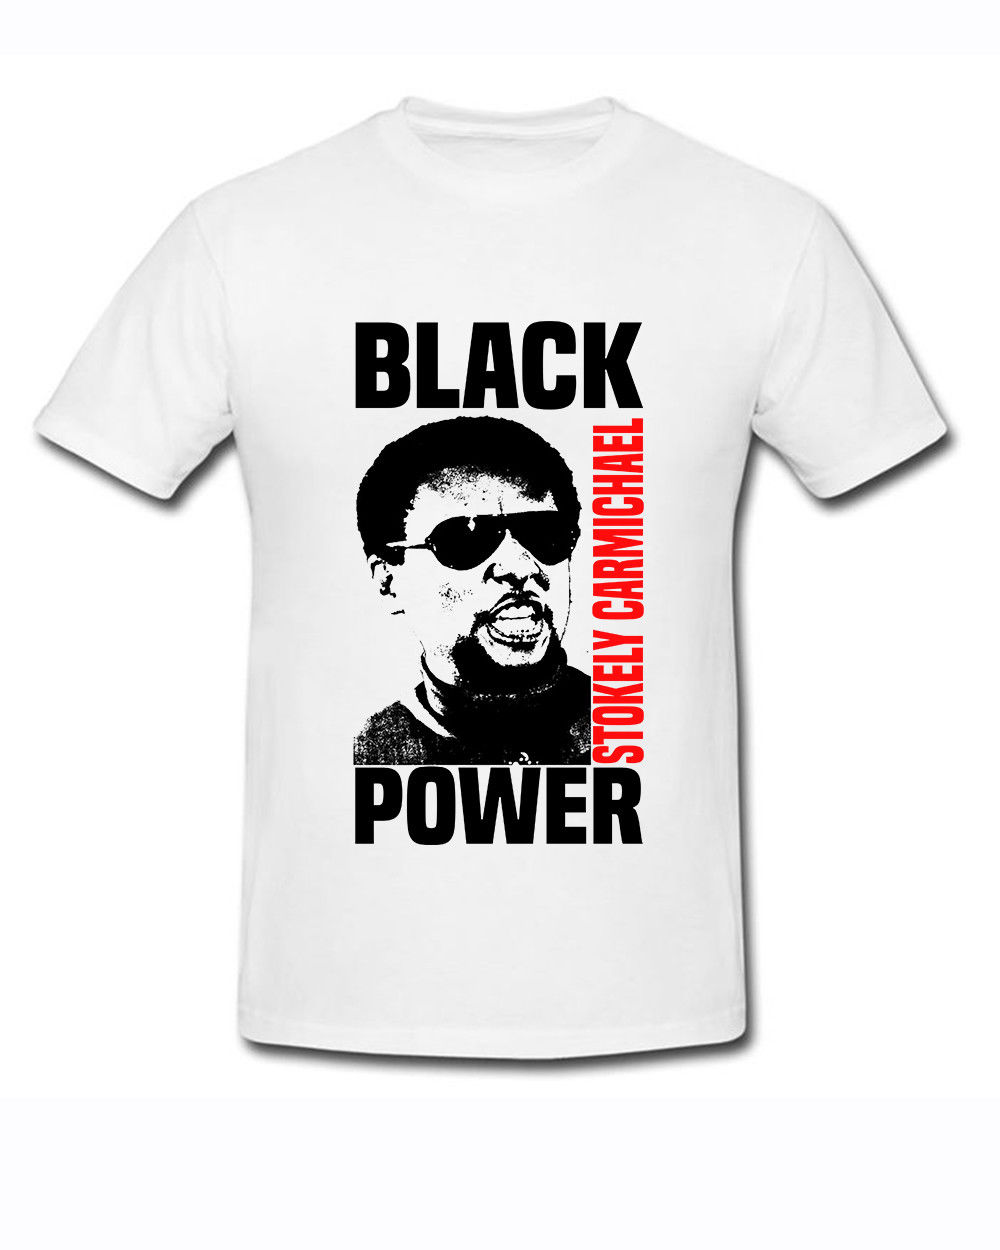 Stokely Carmichael-Black Power White Men T-shirt Size S-3XL Printed T Shirts Short Sleeve Hipster Tee Summer